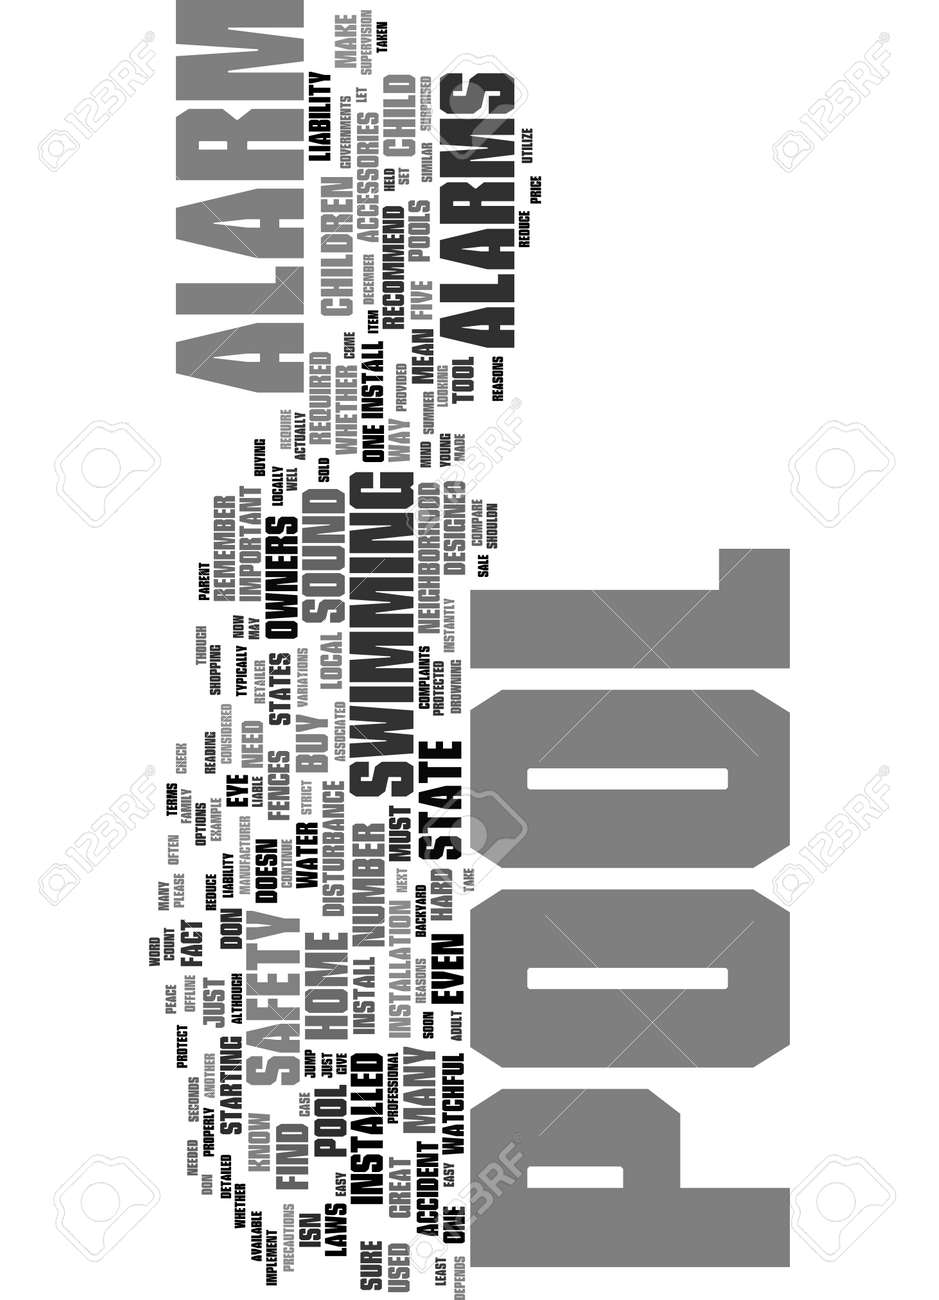 Word Cloud Summary of article 5 Reasons Why You Should Install a Pool Alarm - 160186311